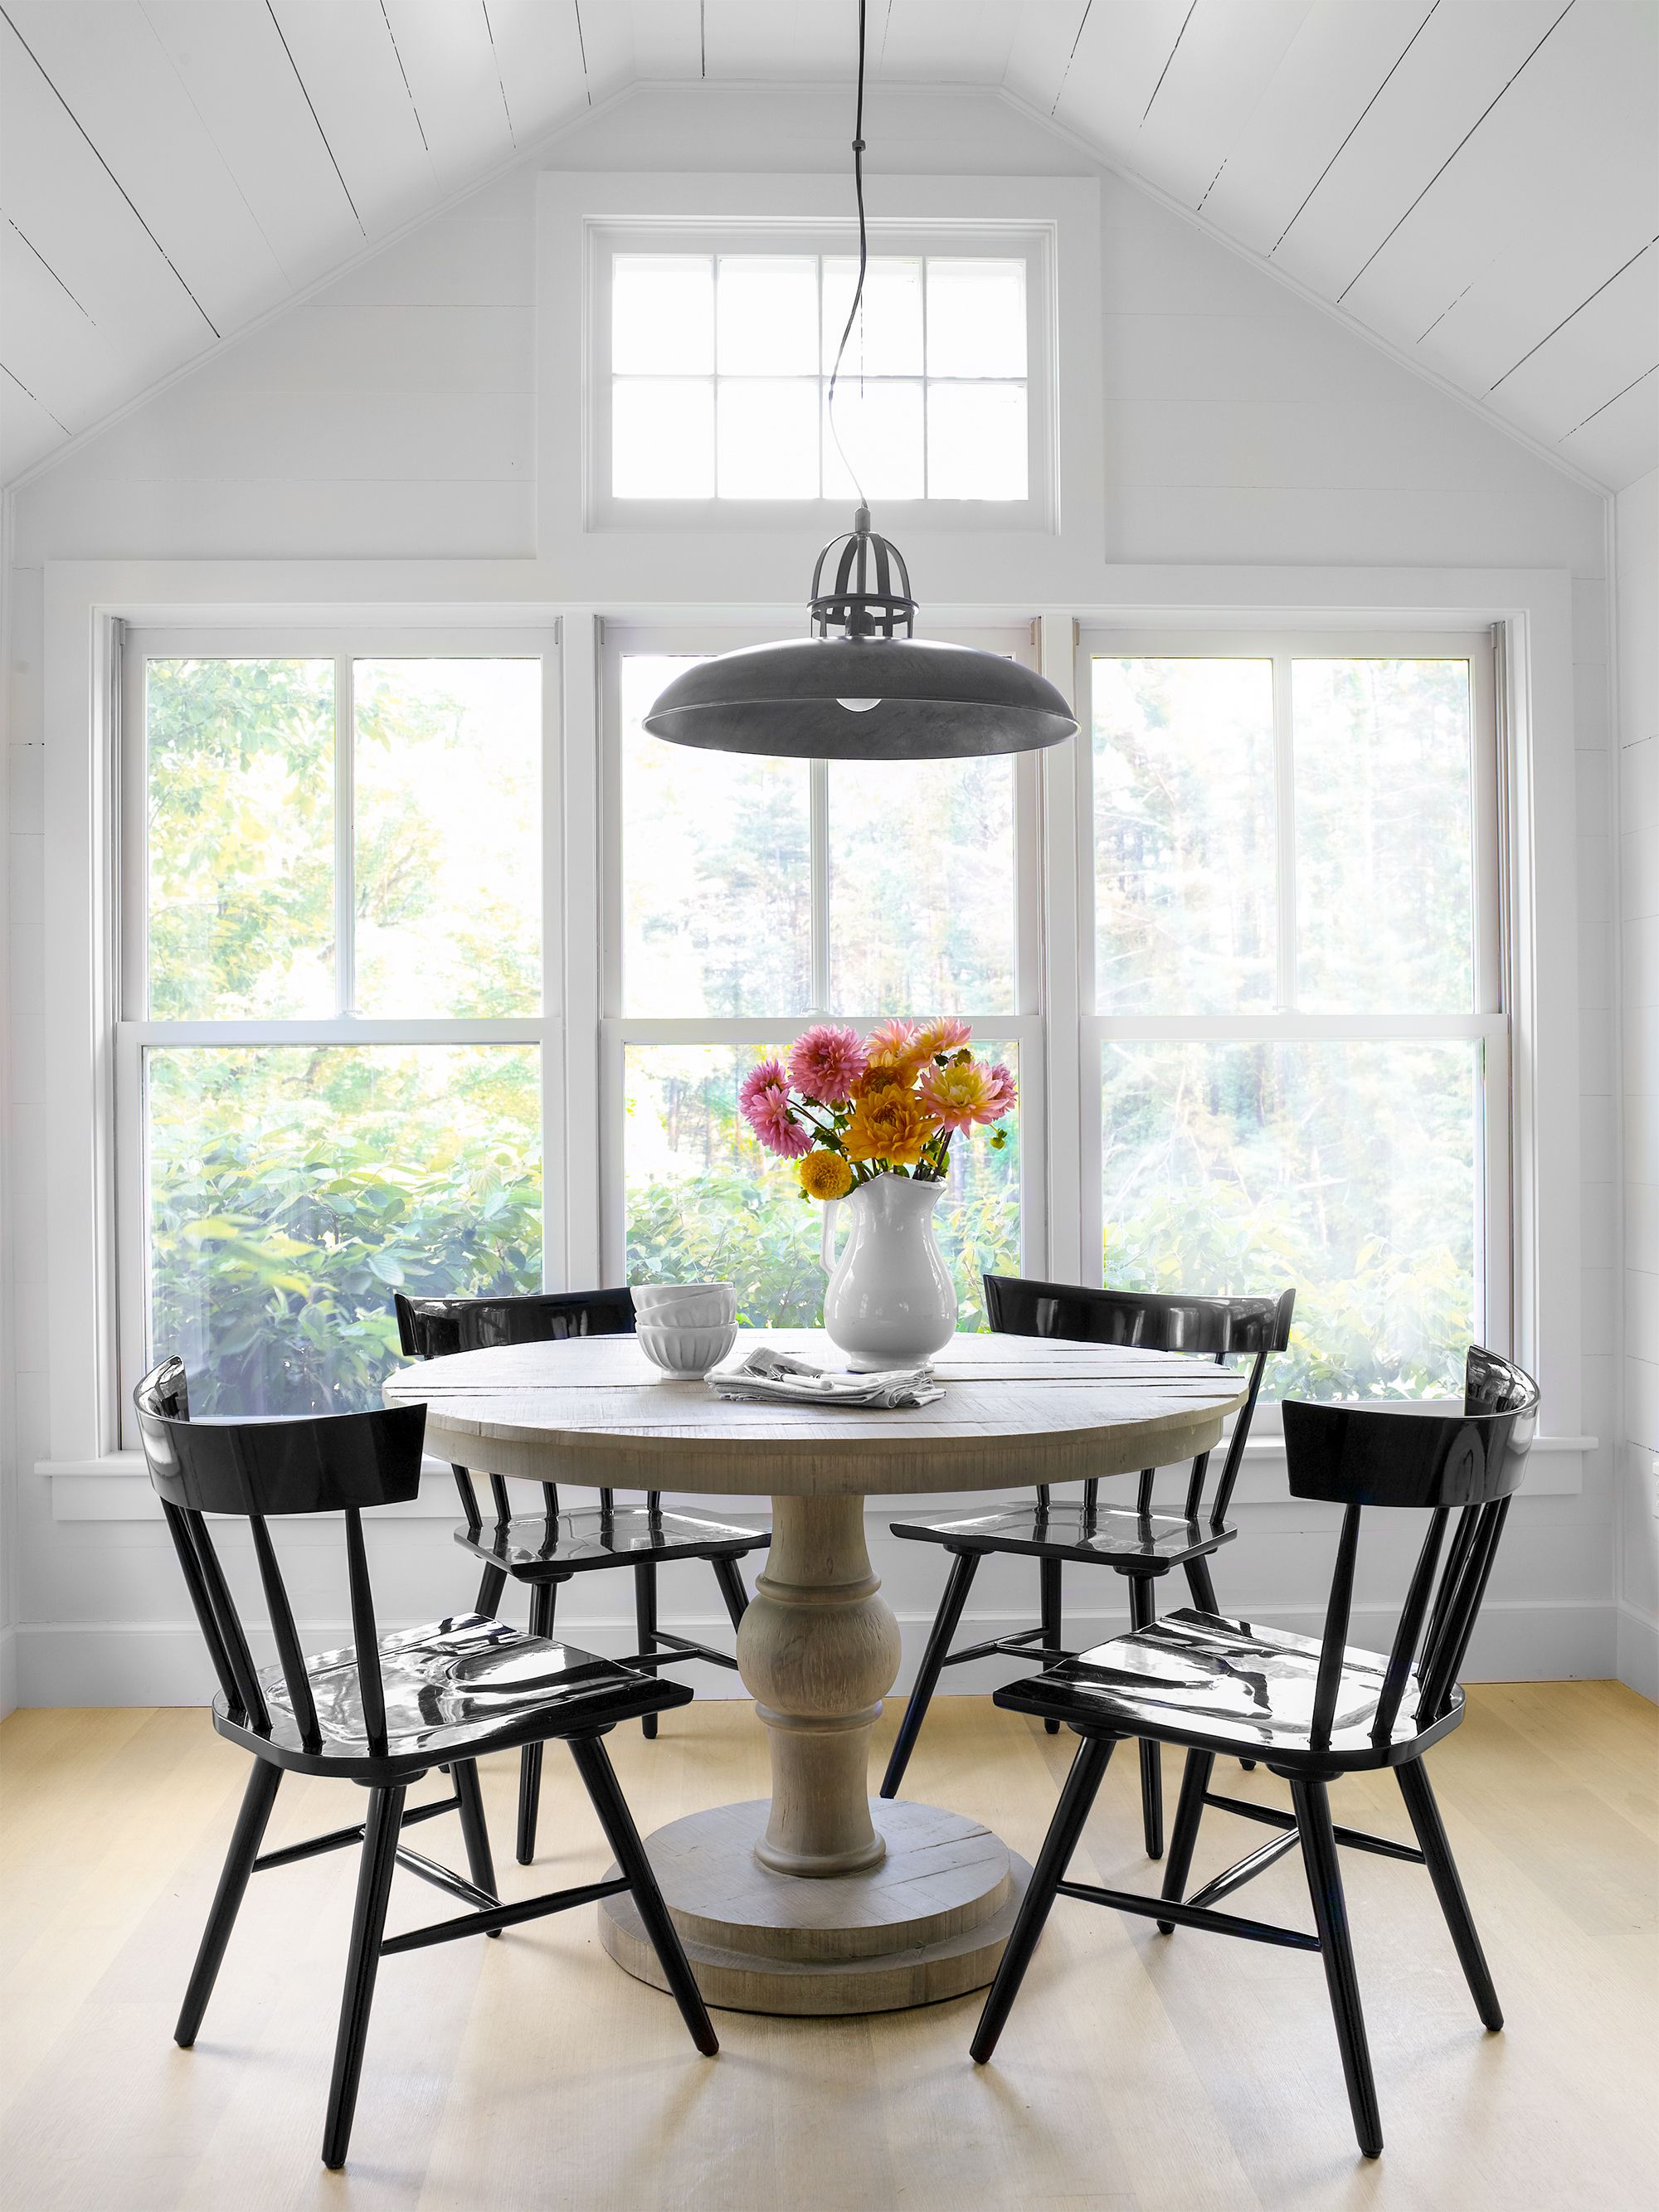 37 Breakfast Nook Ideas - Kitchen Nook Furniture